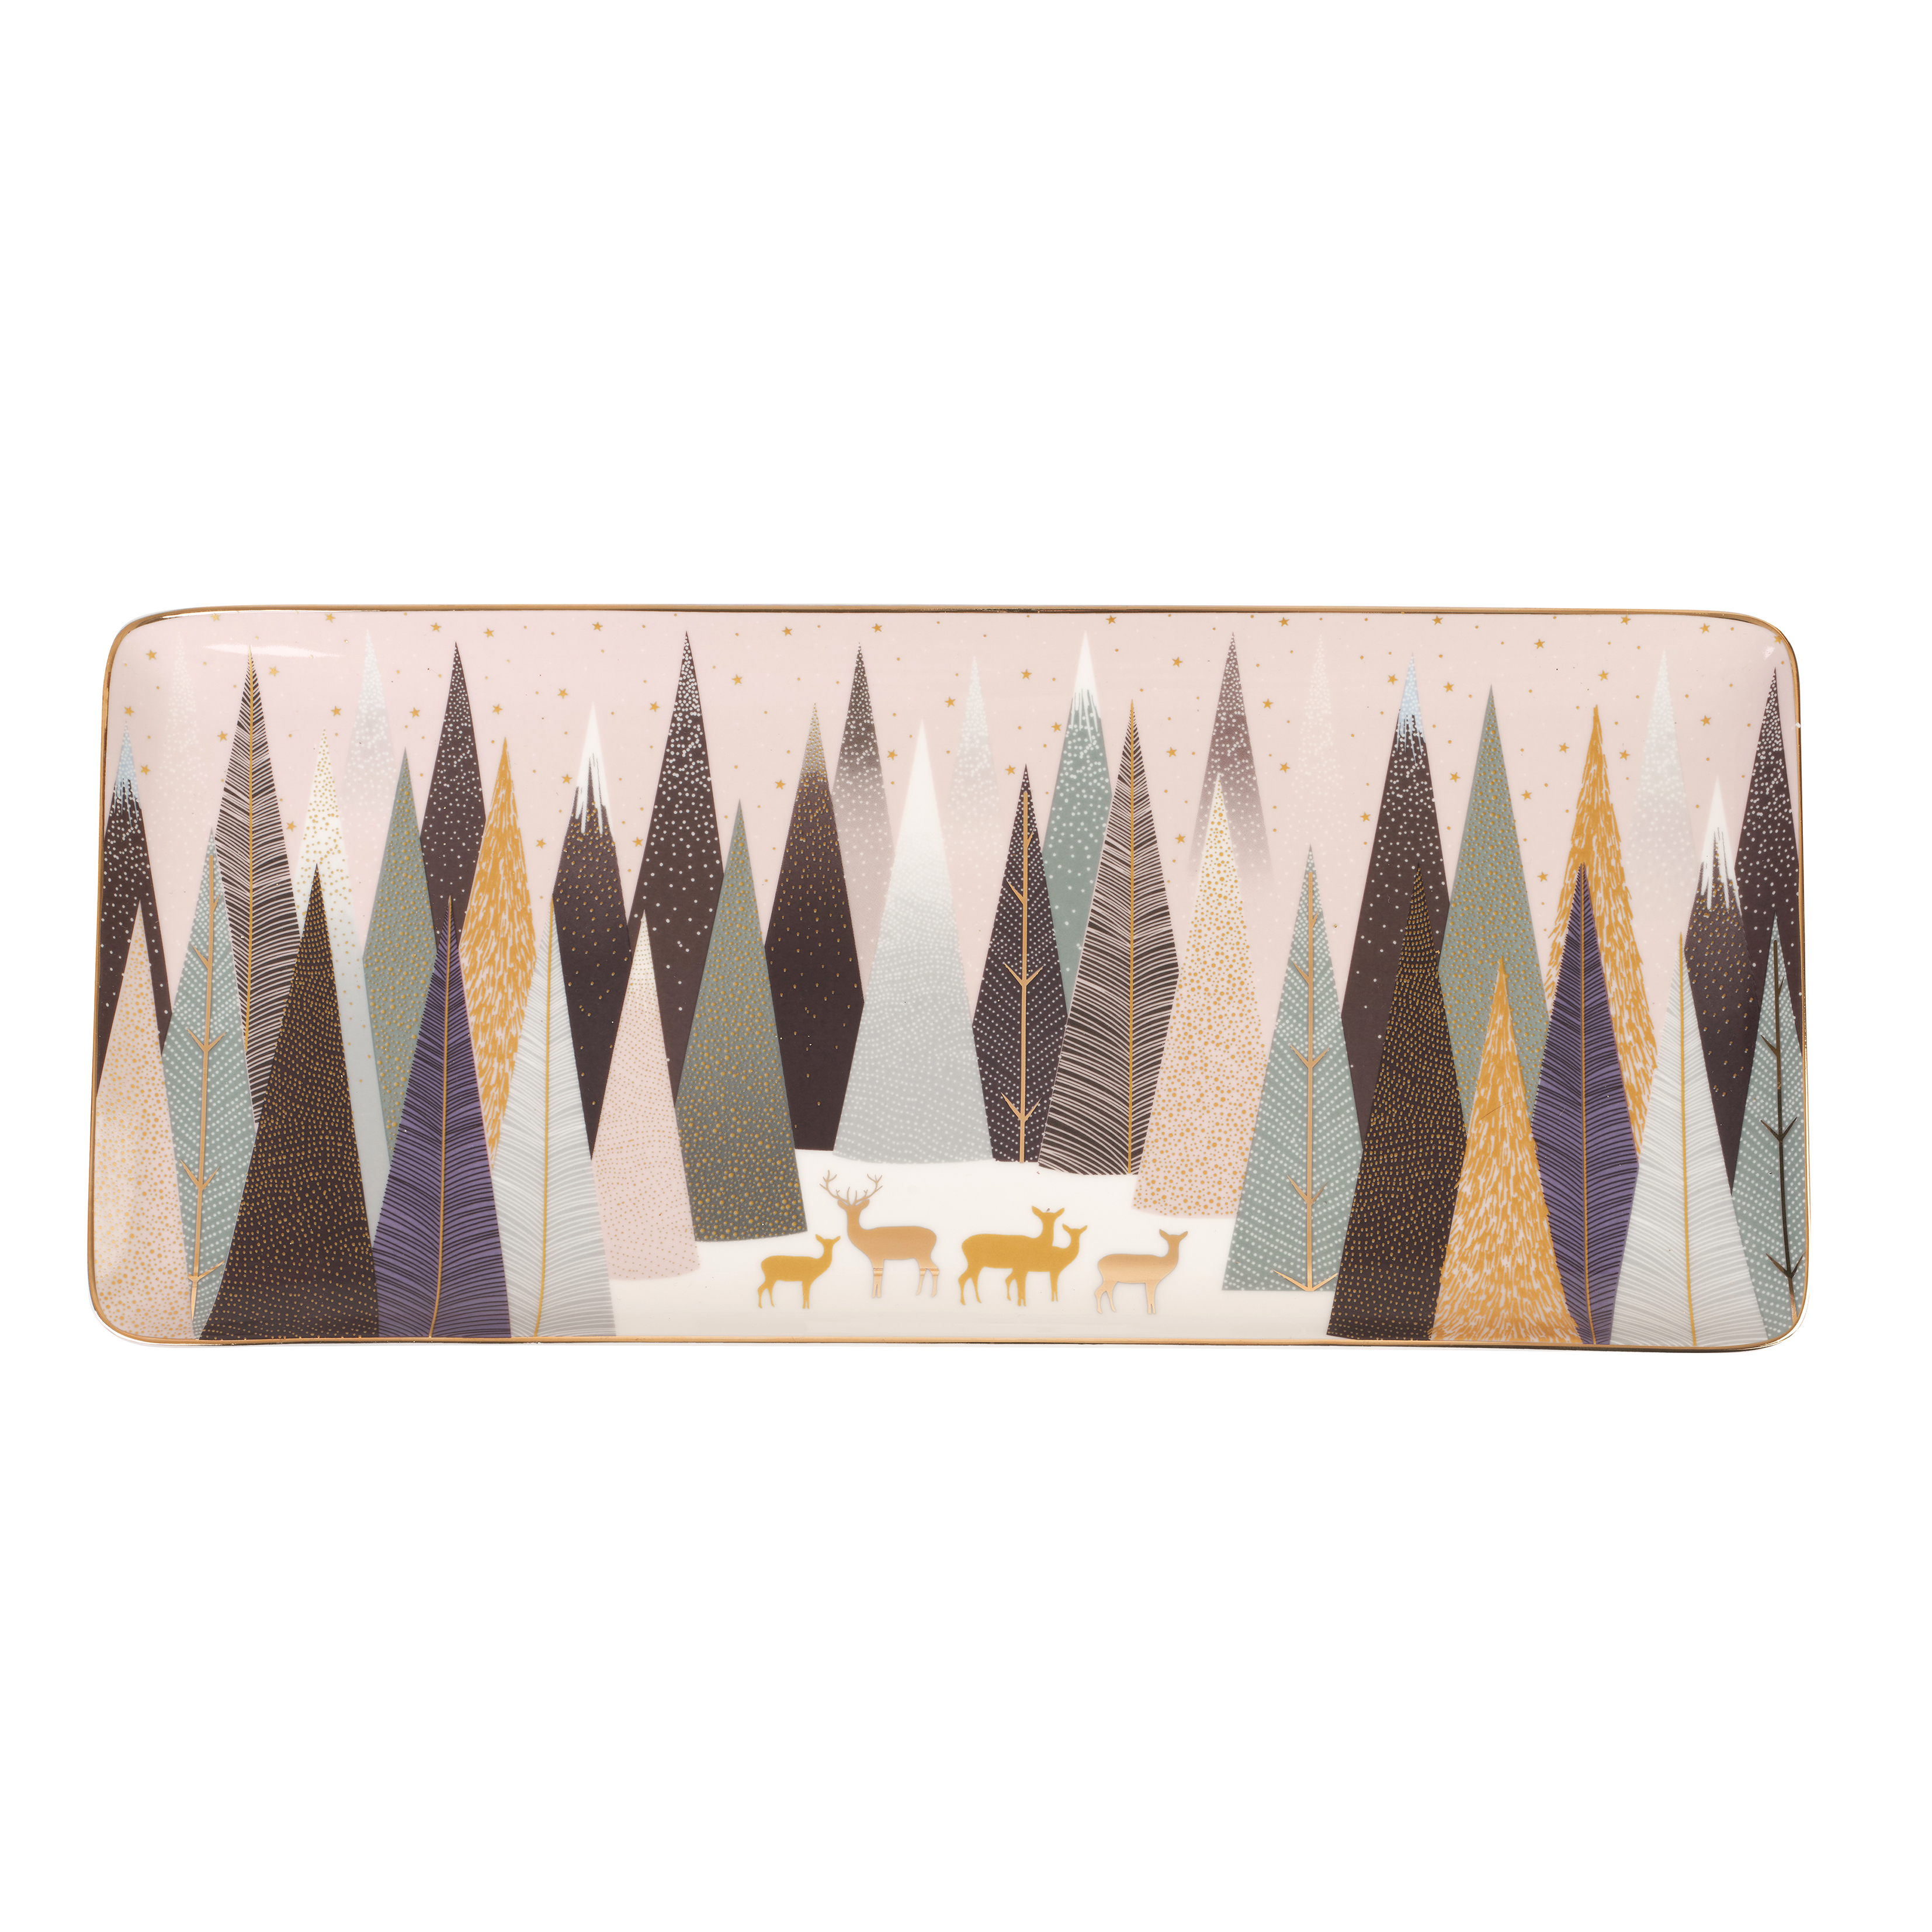 Sara Miller London for Portmeirion Frosted Pines 14 Inch Sandwich Tray image number 0